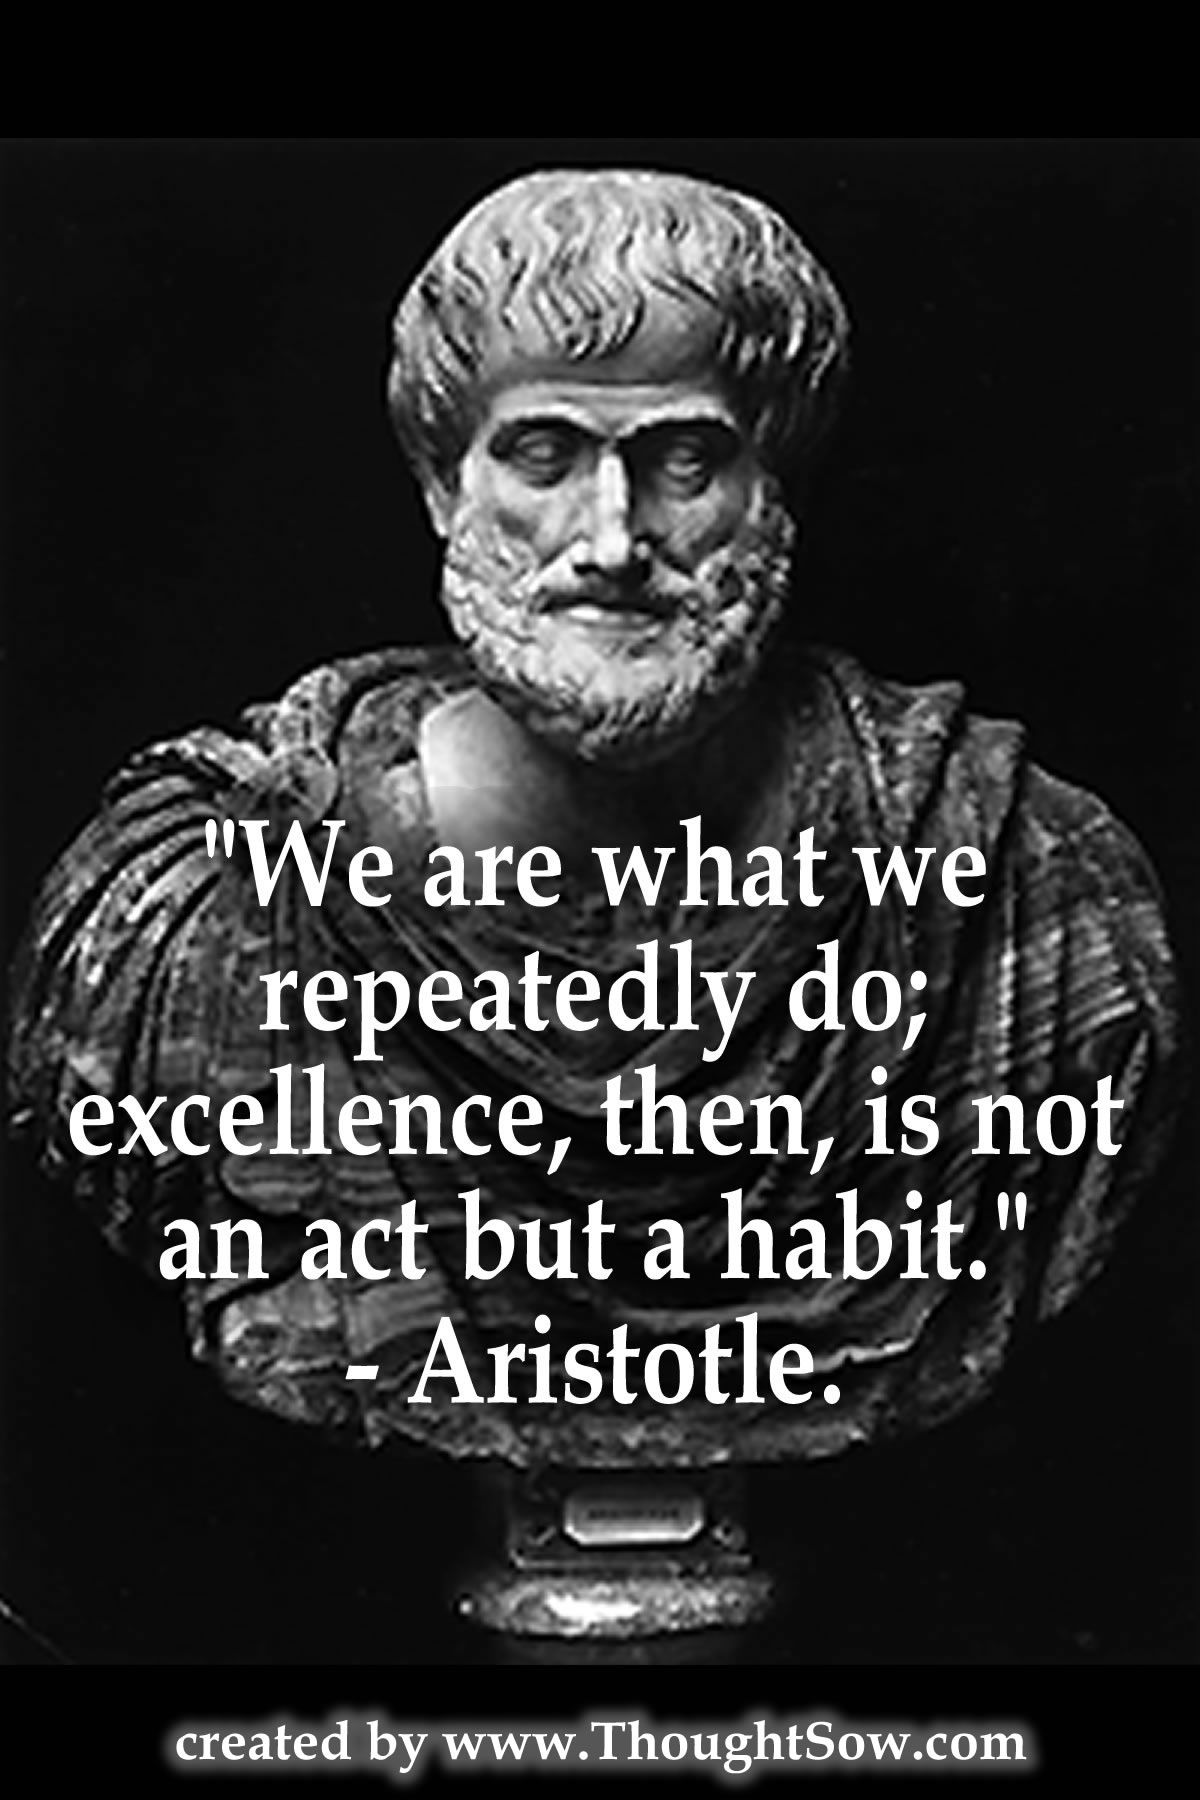 My All Time Favorite Fitness Motivational Pictures Aristotle Quotes Wisdom Quotes Wise Quotes